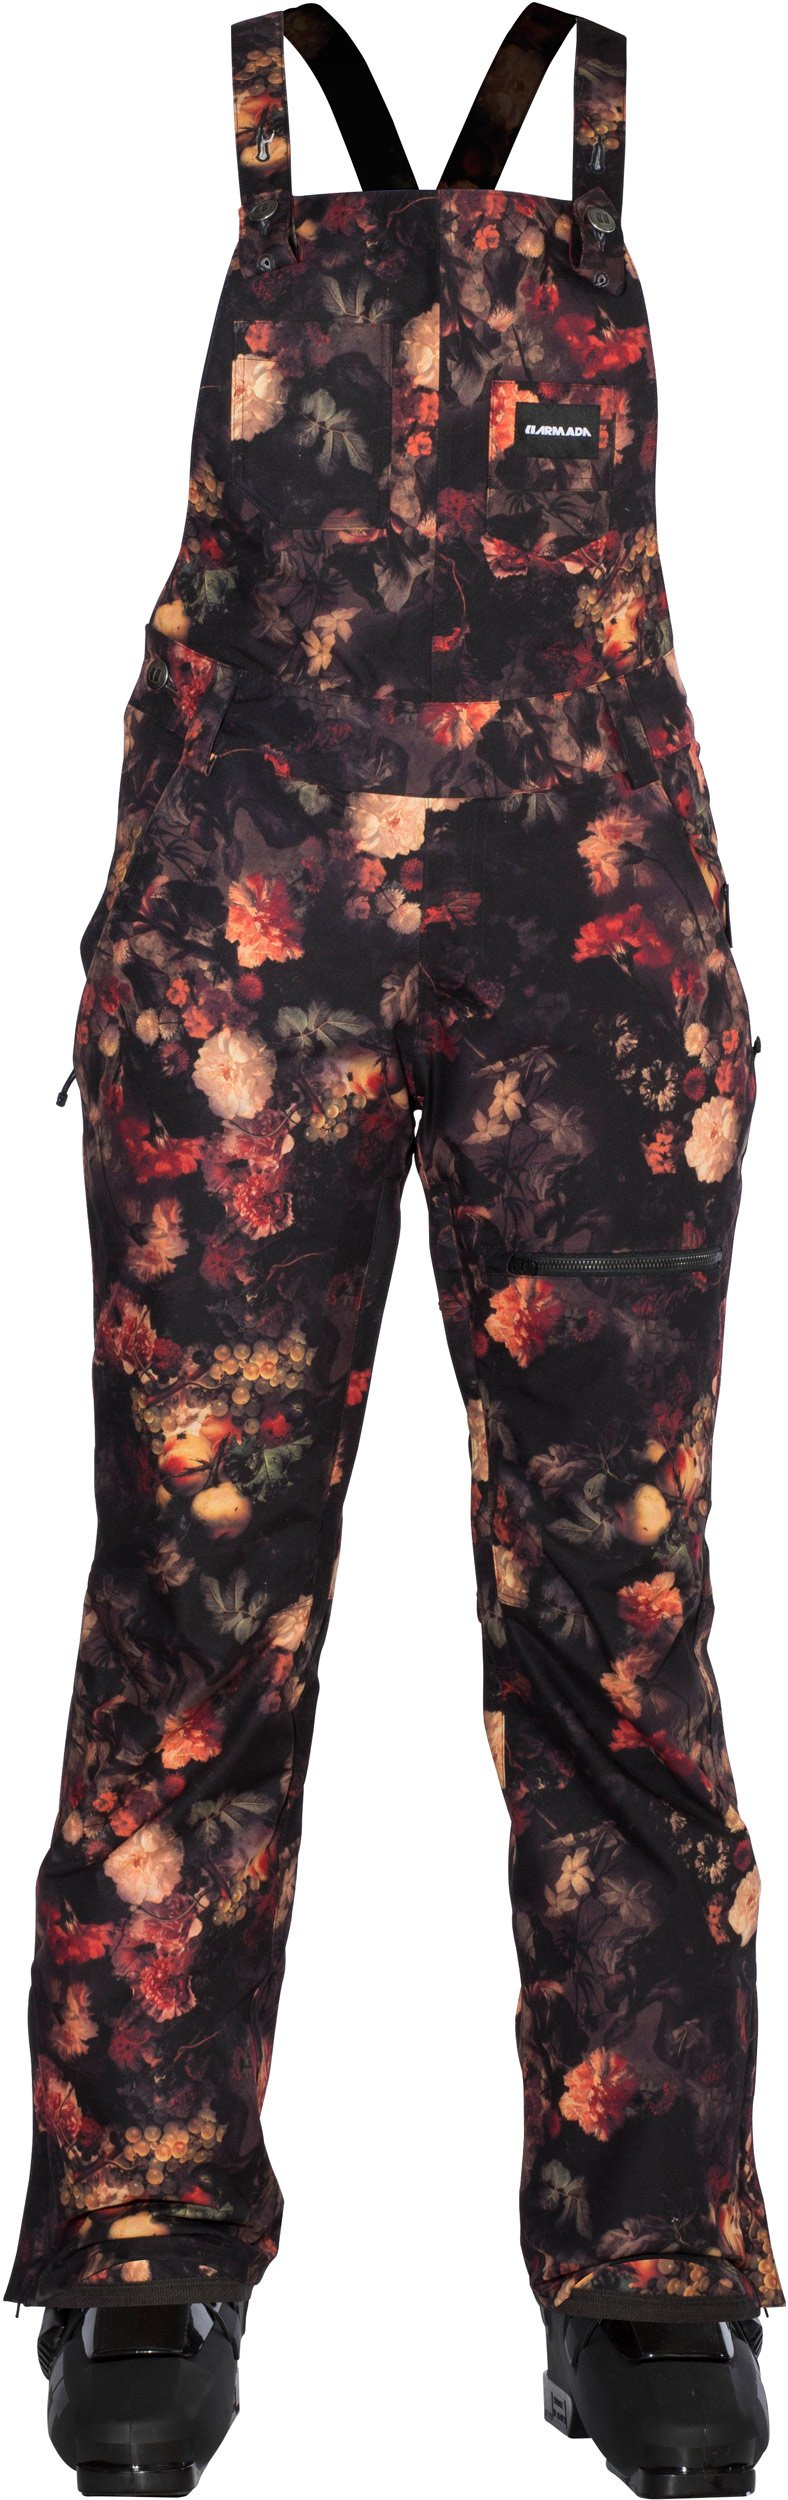 Armada Armarda Cassie Overall - Floral - Large